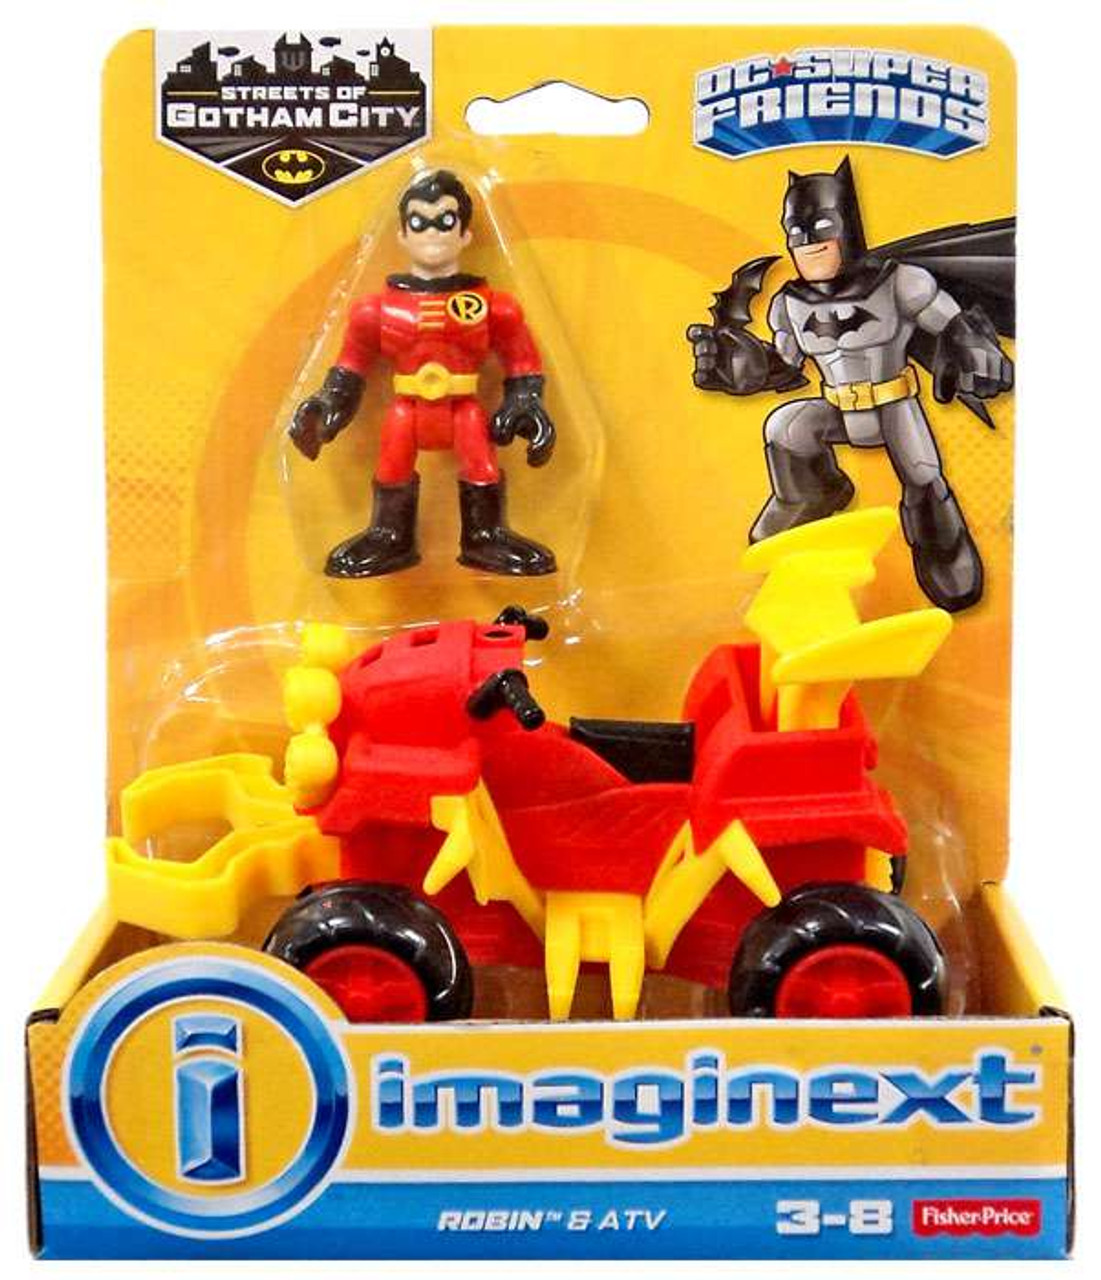 Fisher Price Dc Super Friends Streets Of Gotham City